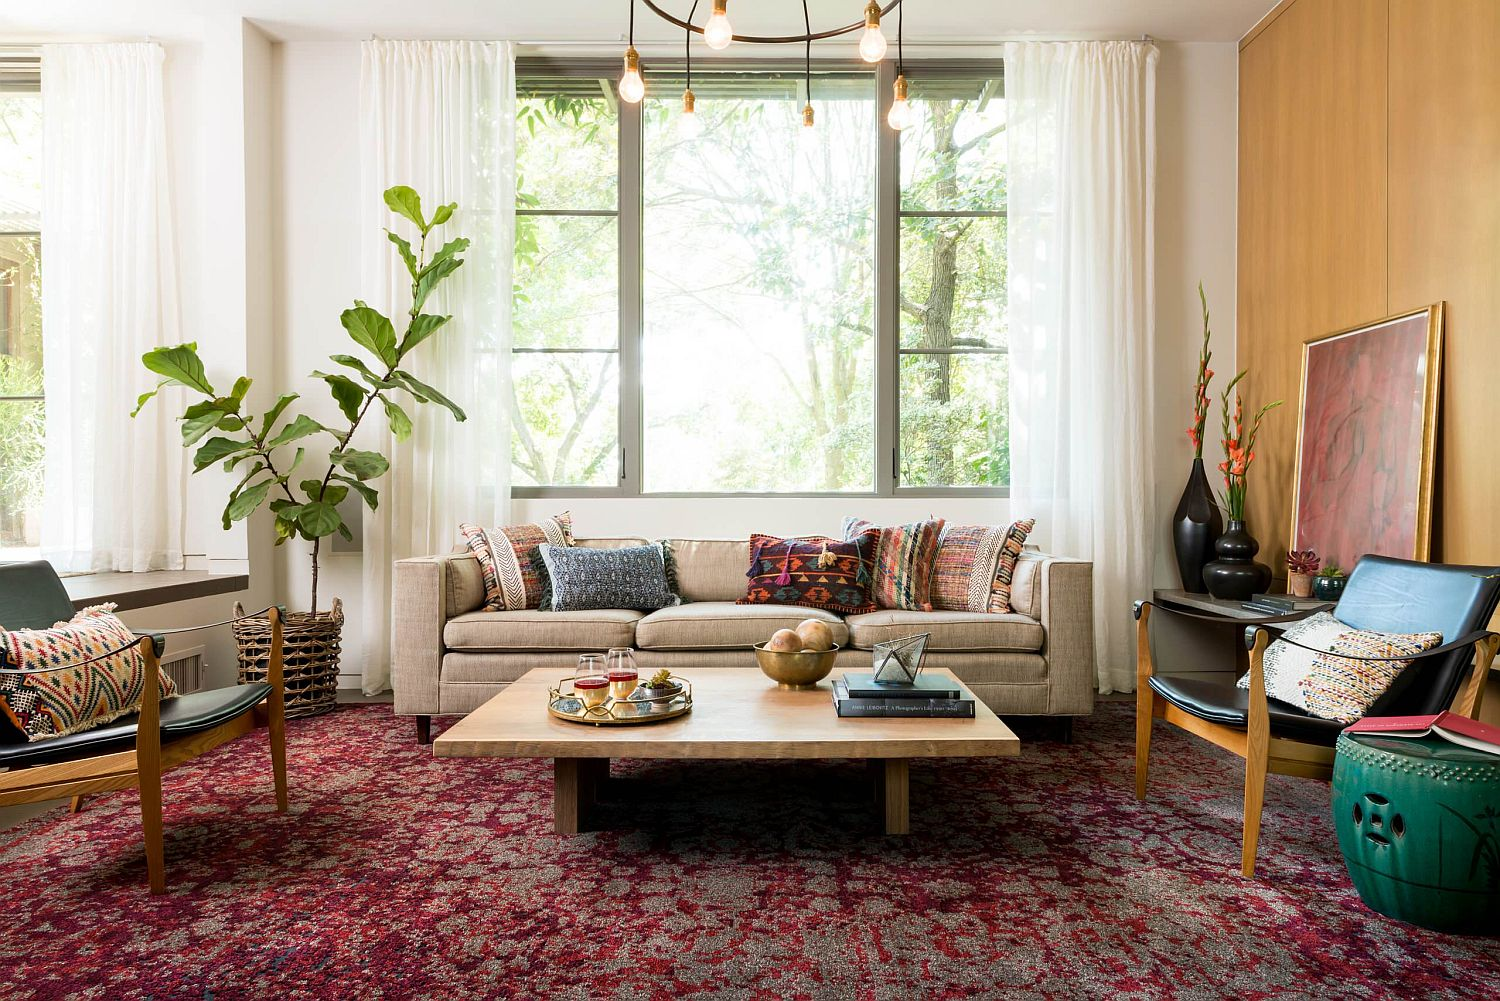 Beautiful rug makes plenty of visual impact in this colorful modern eclectic living room